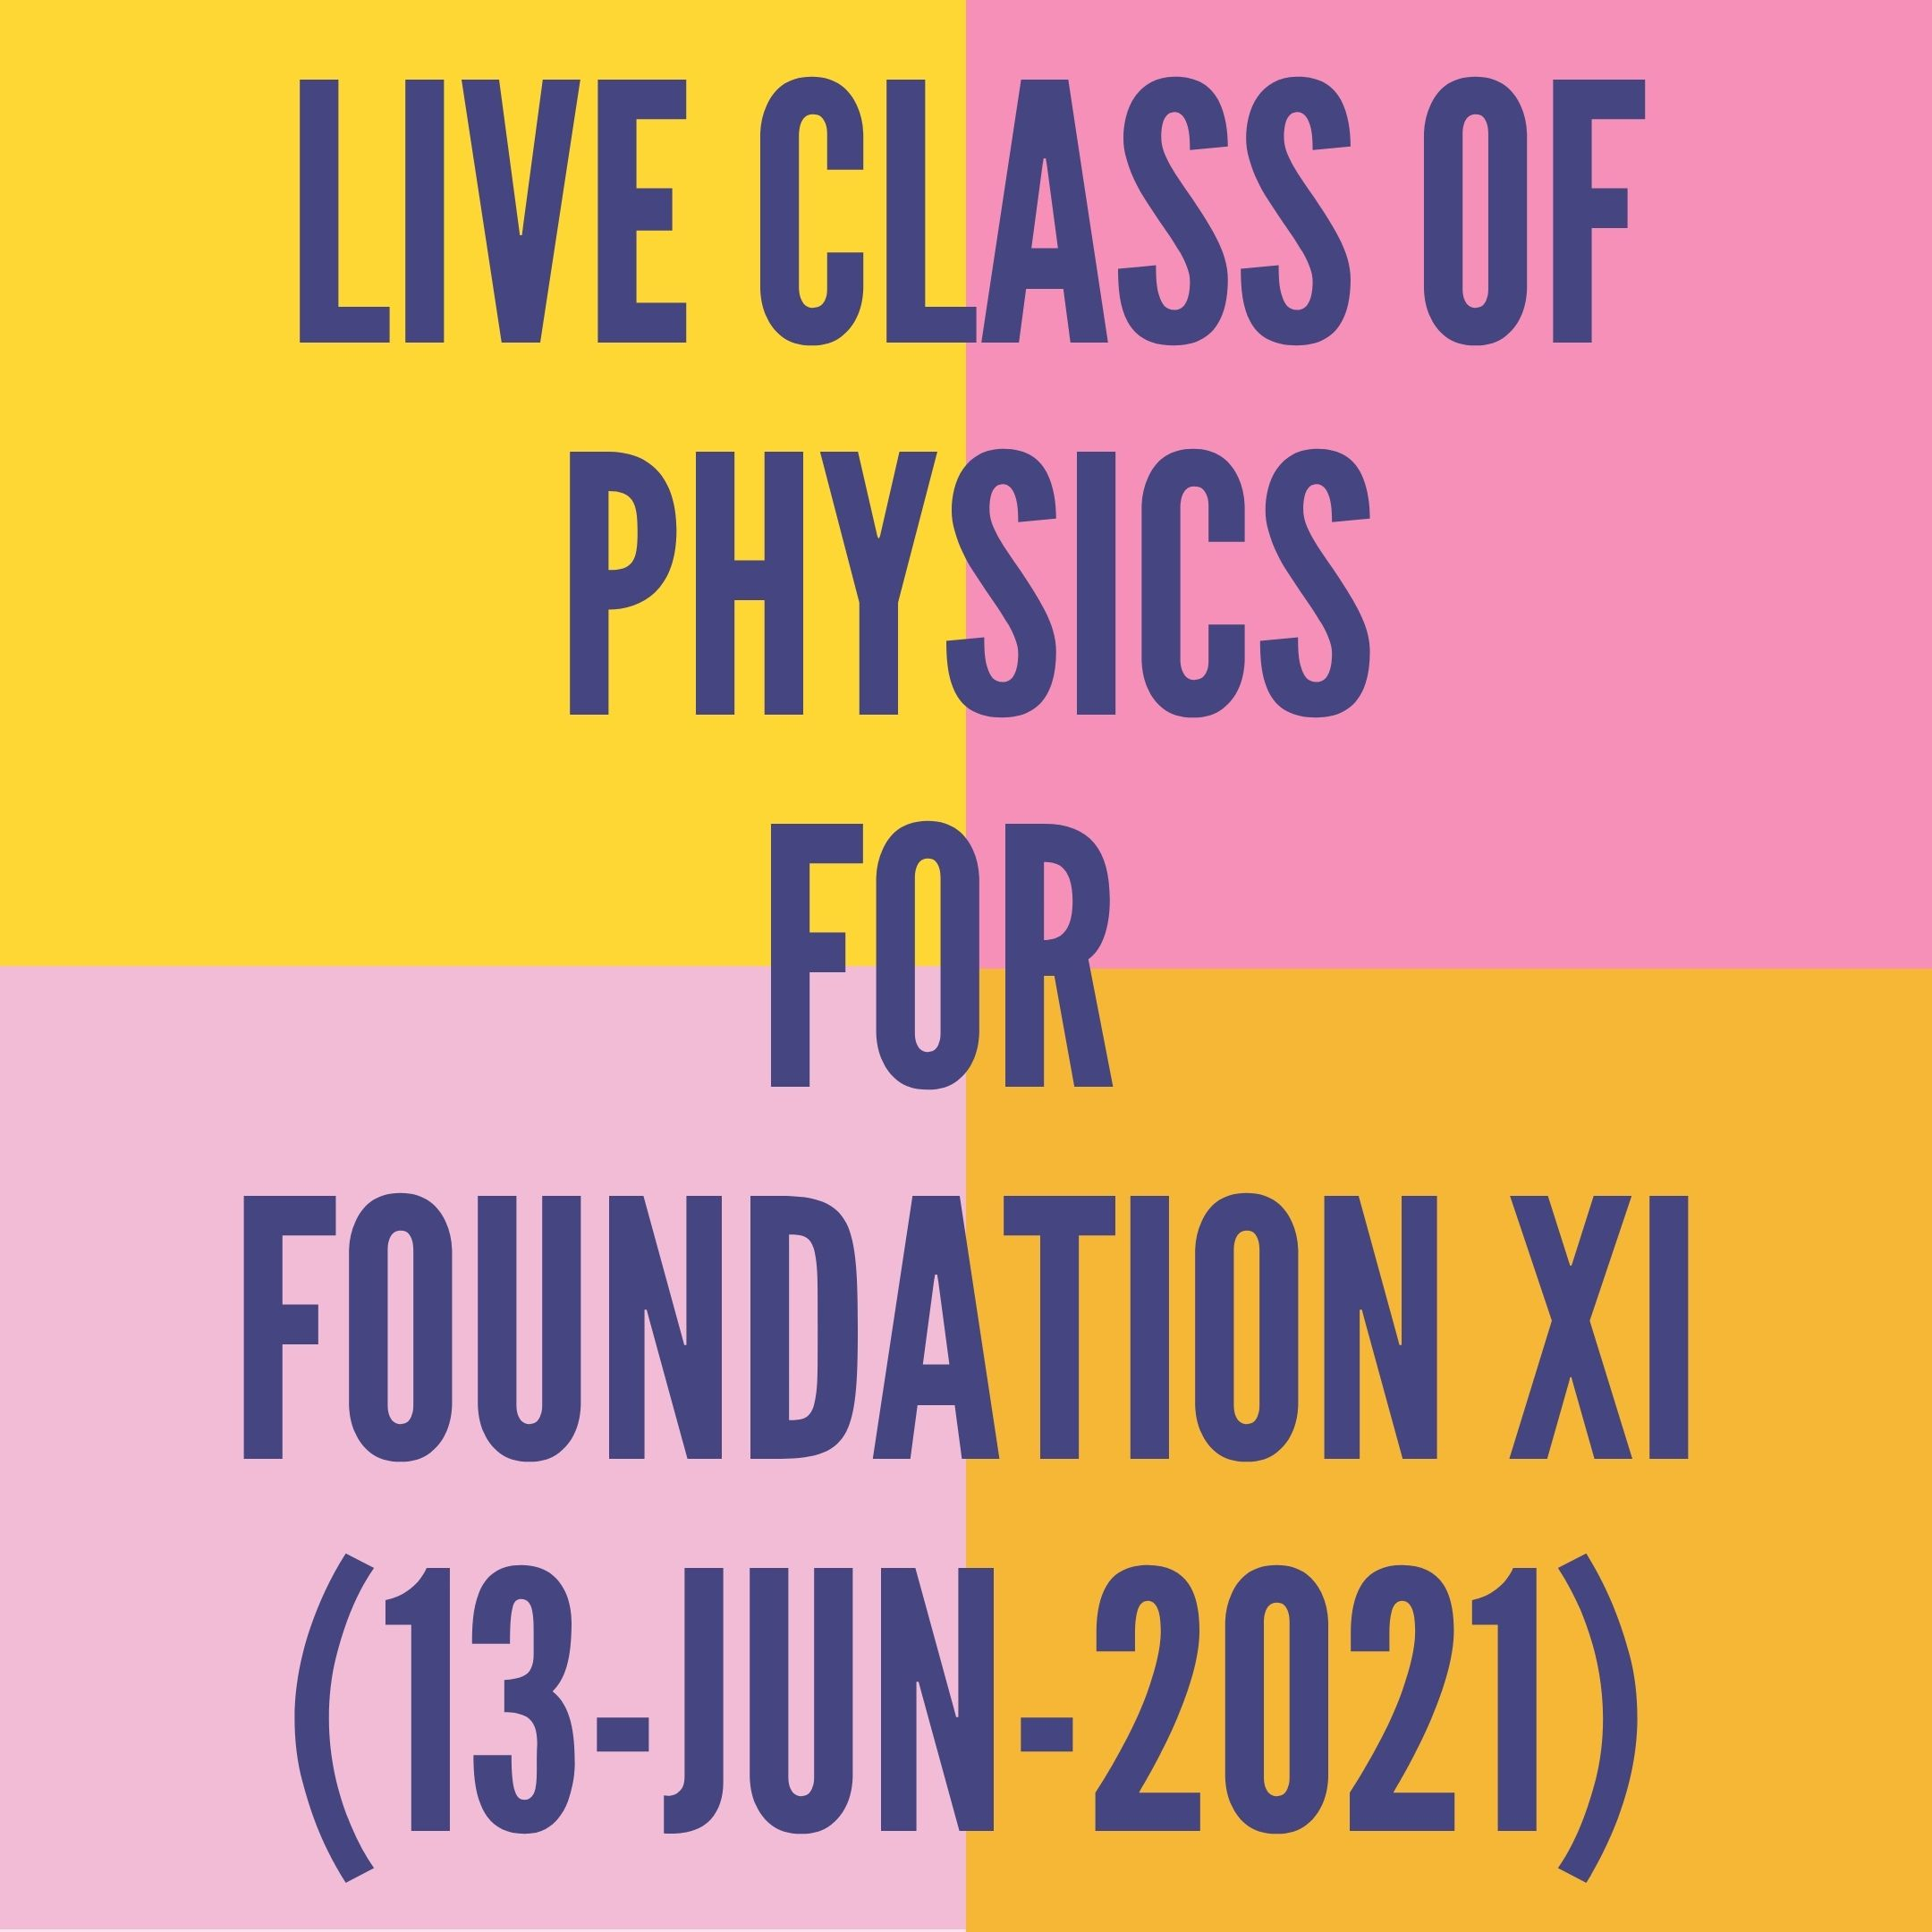 LIVE CLASS OF PHYSICS FOR FOUNDATION XI (13-JUN-2021) APPLIED MATHS